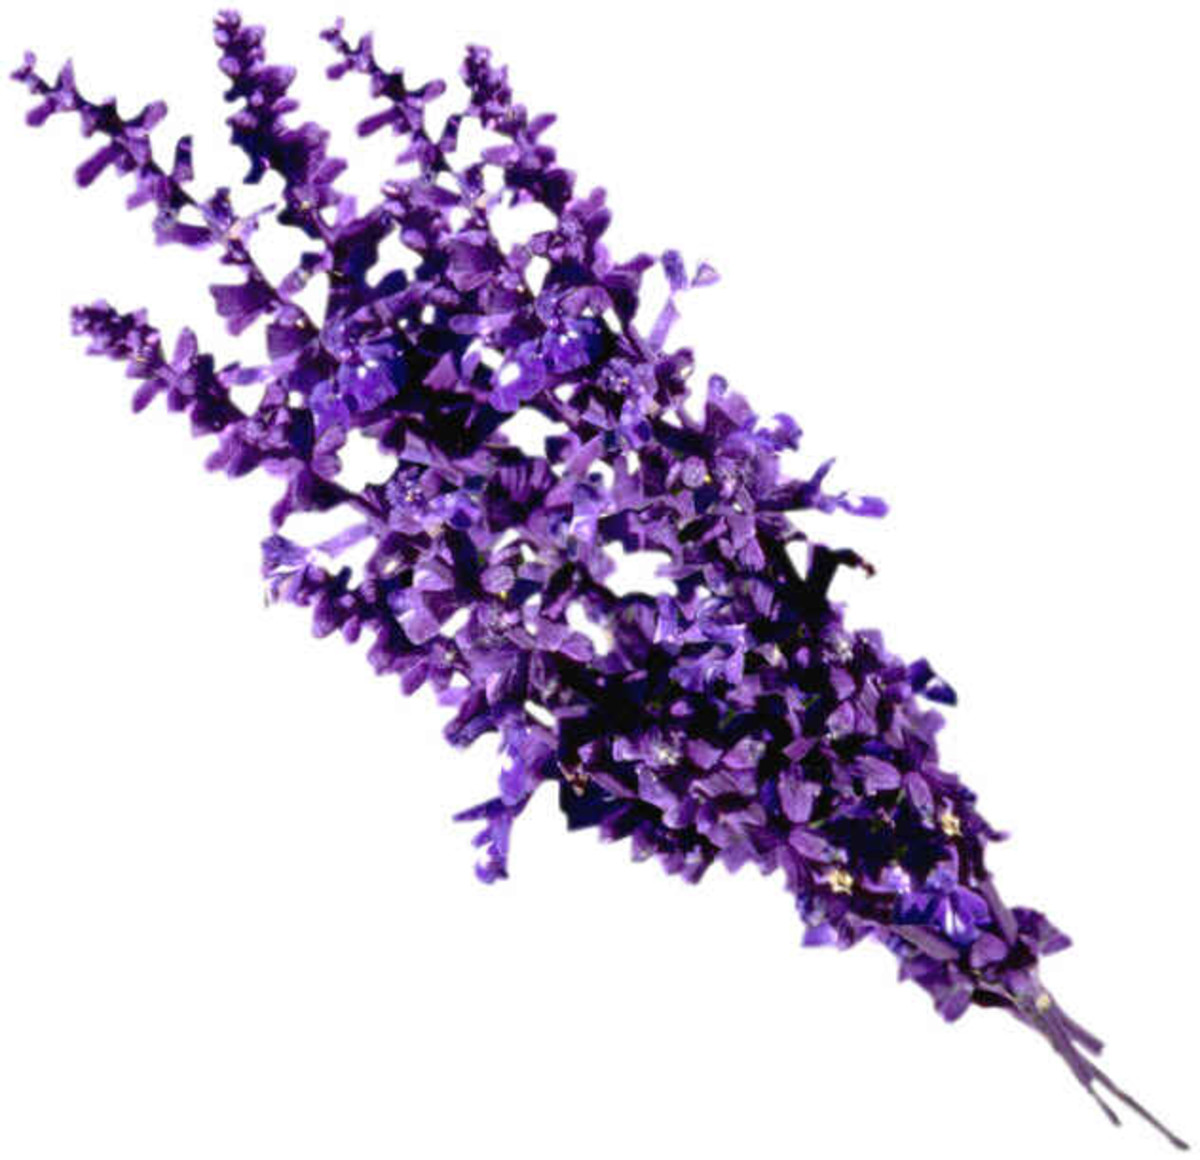 Top 10 Best Lavender based Perfumes or Fragrances for Men